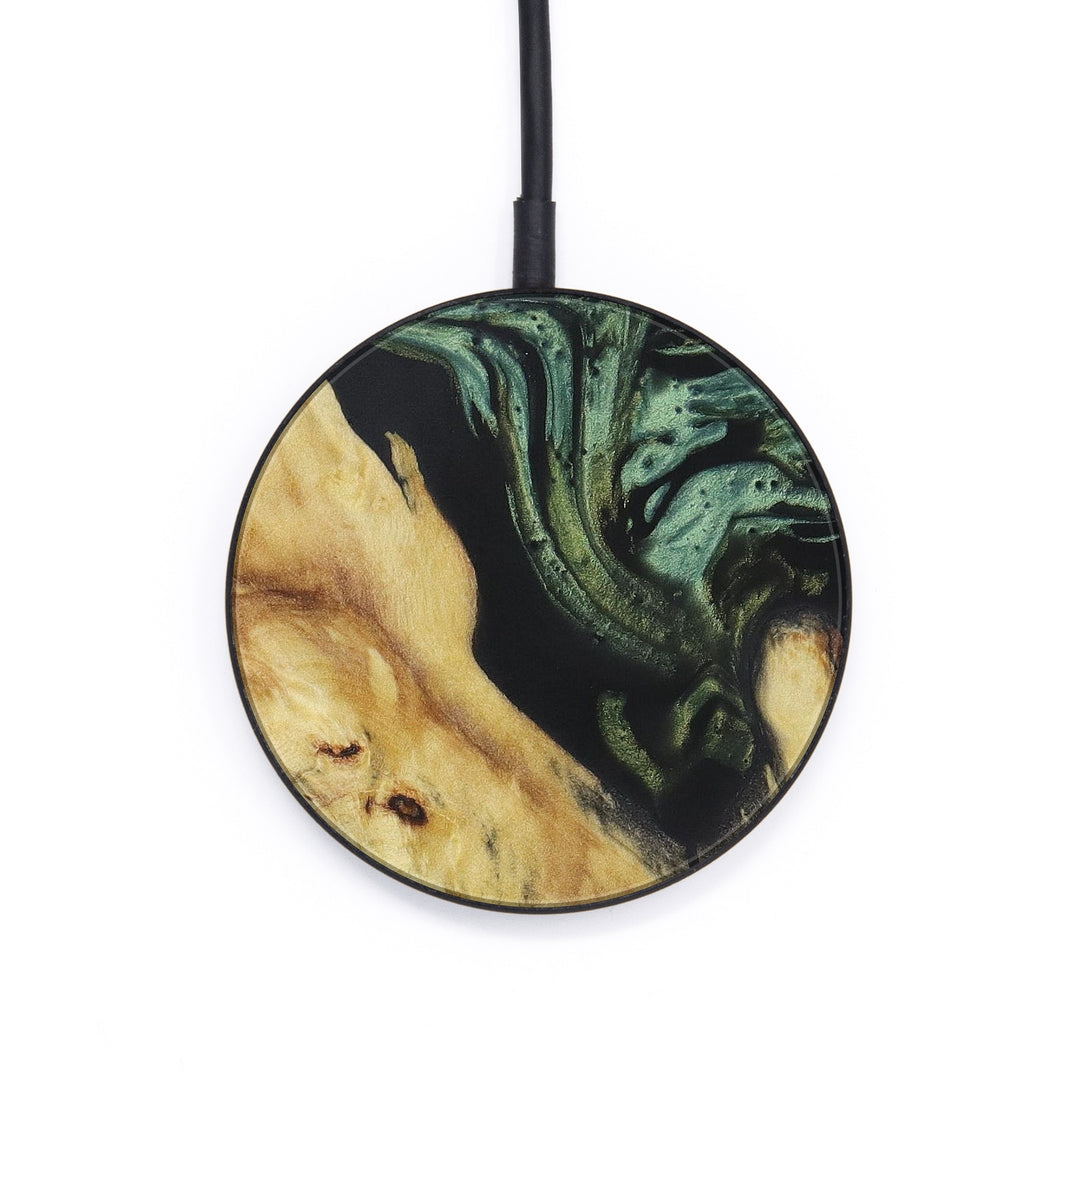 Circle Wood+Resin Wireless Charger - Ernest (Dark Green, 406206)